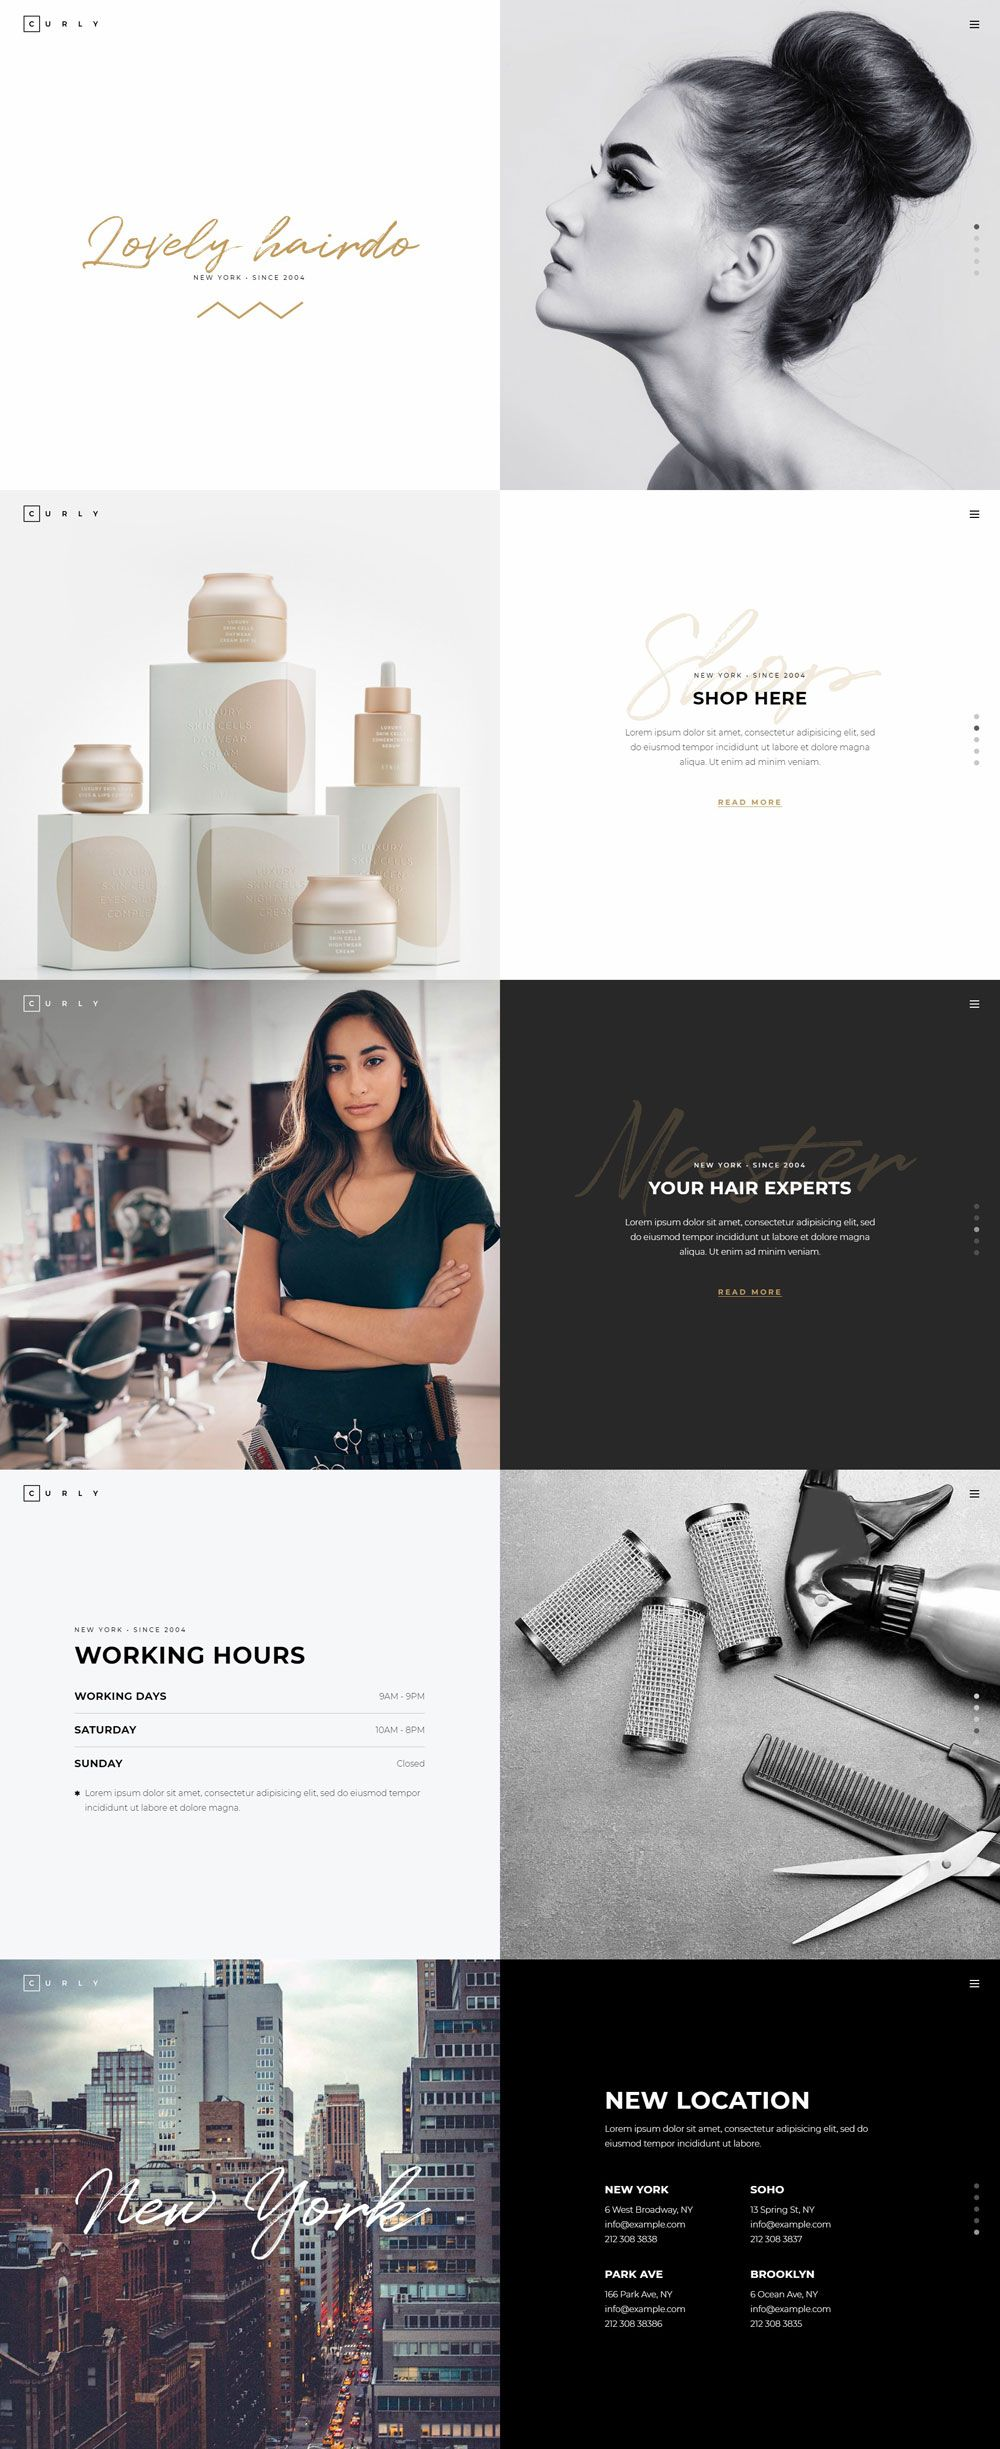 curly hairdressers and hair salons on landing pages pinterest rh pinterest com